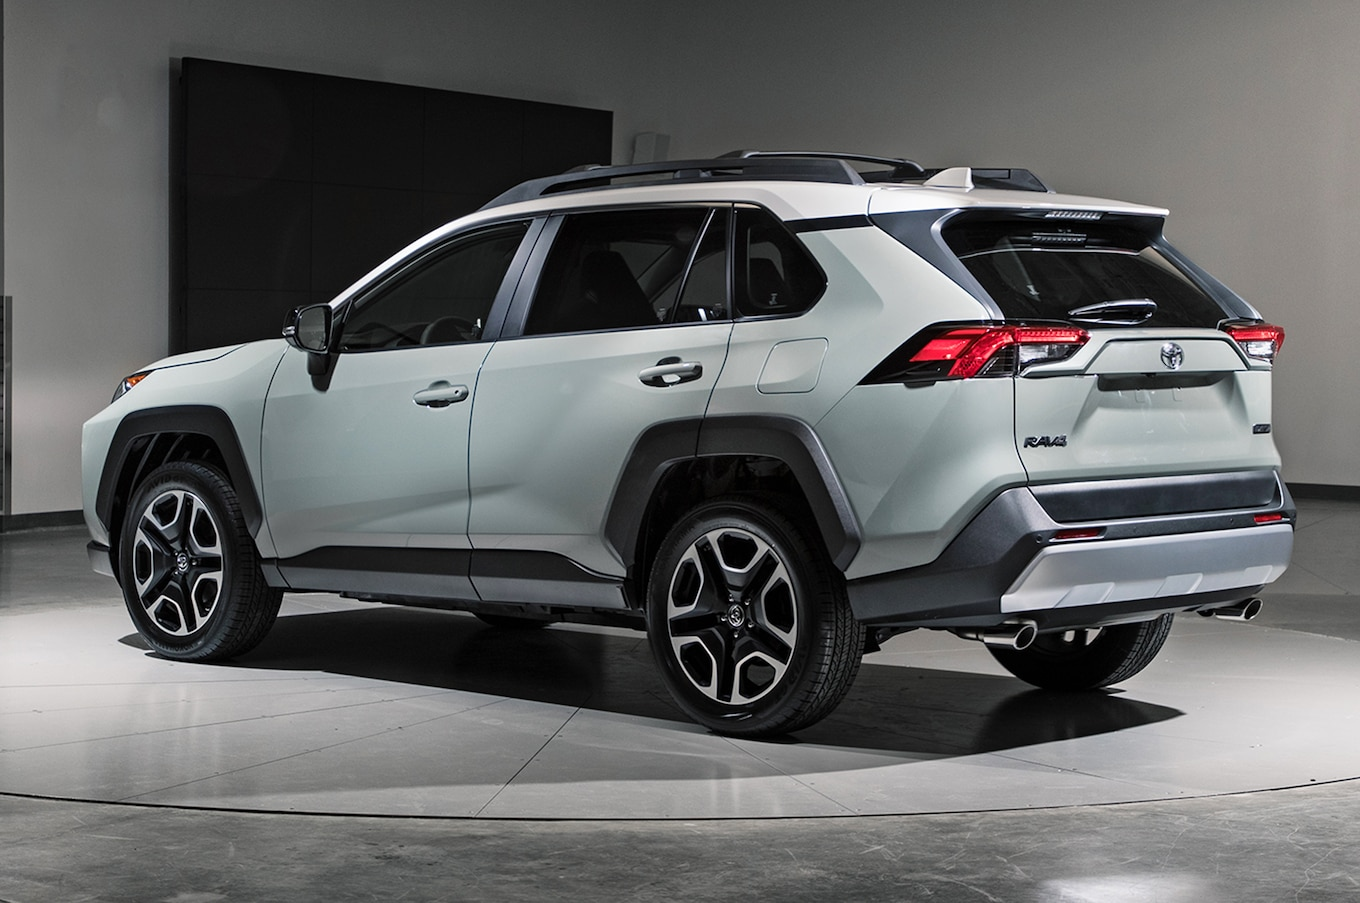 2019-Toyota-RAV4-rear-three-quarter-01-1